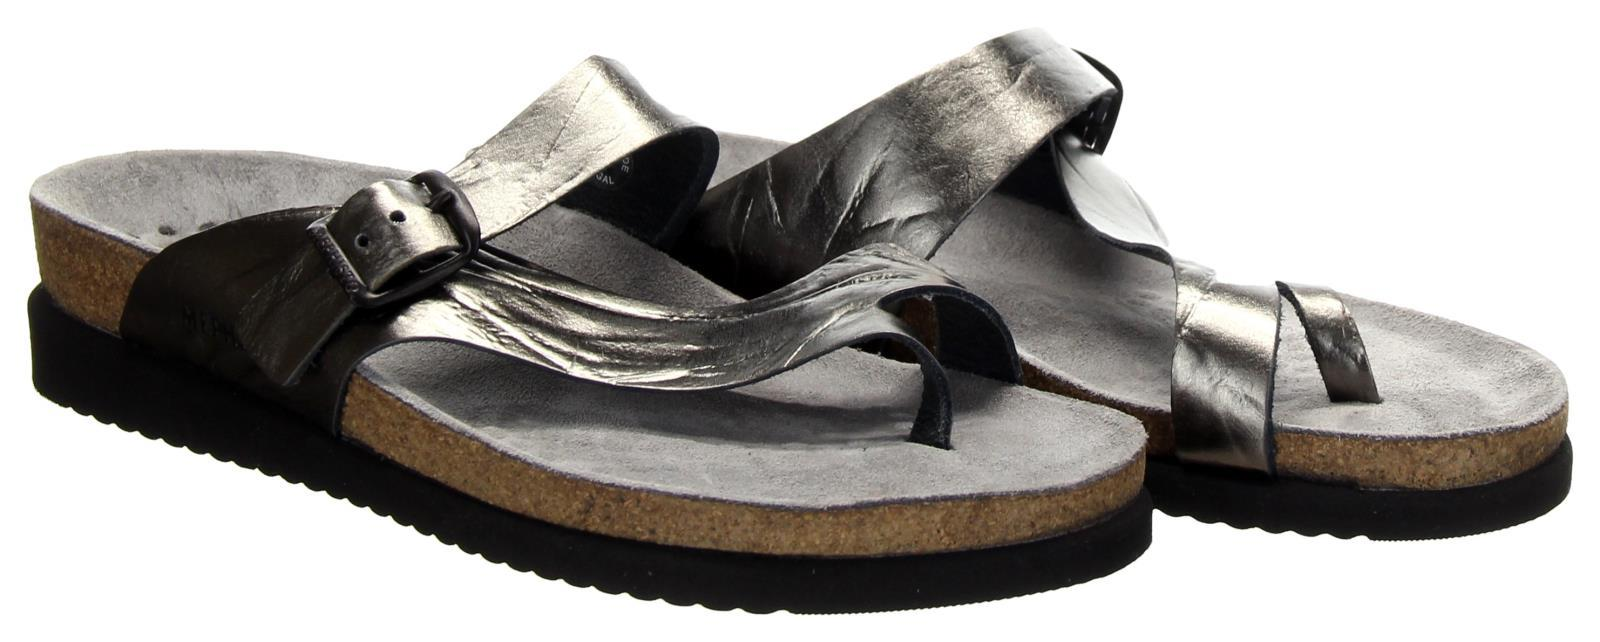 Mephisto Helen Water-Repellent Nubuck Slip-on Sandals Silver Sz 39 New